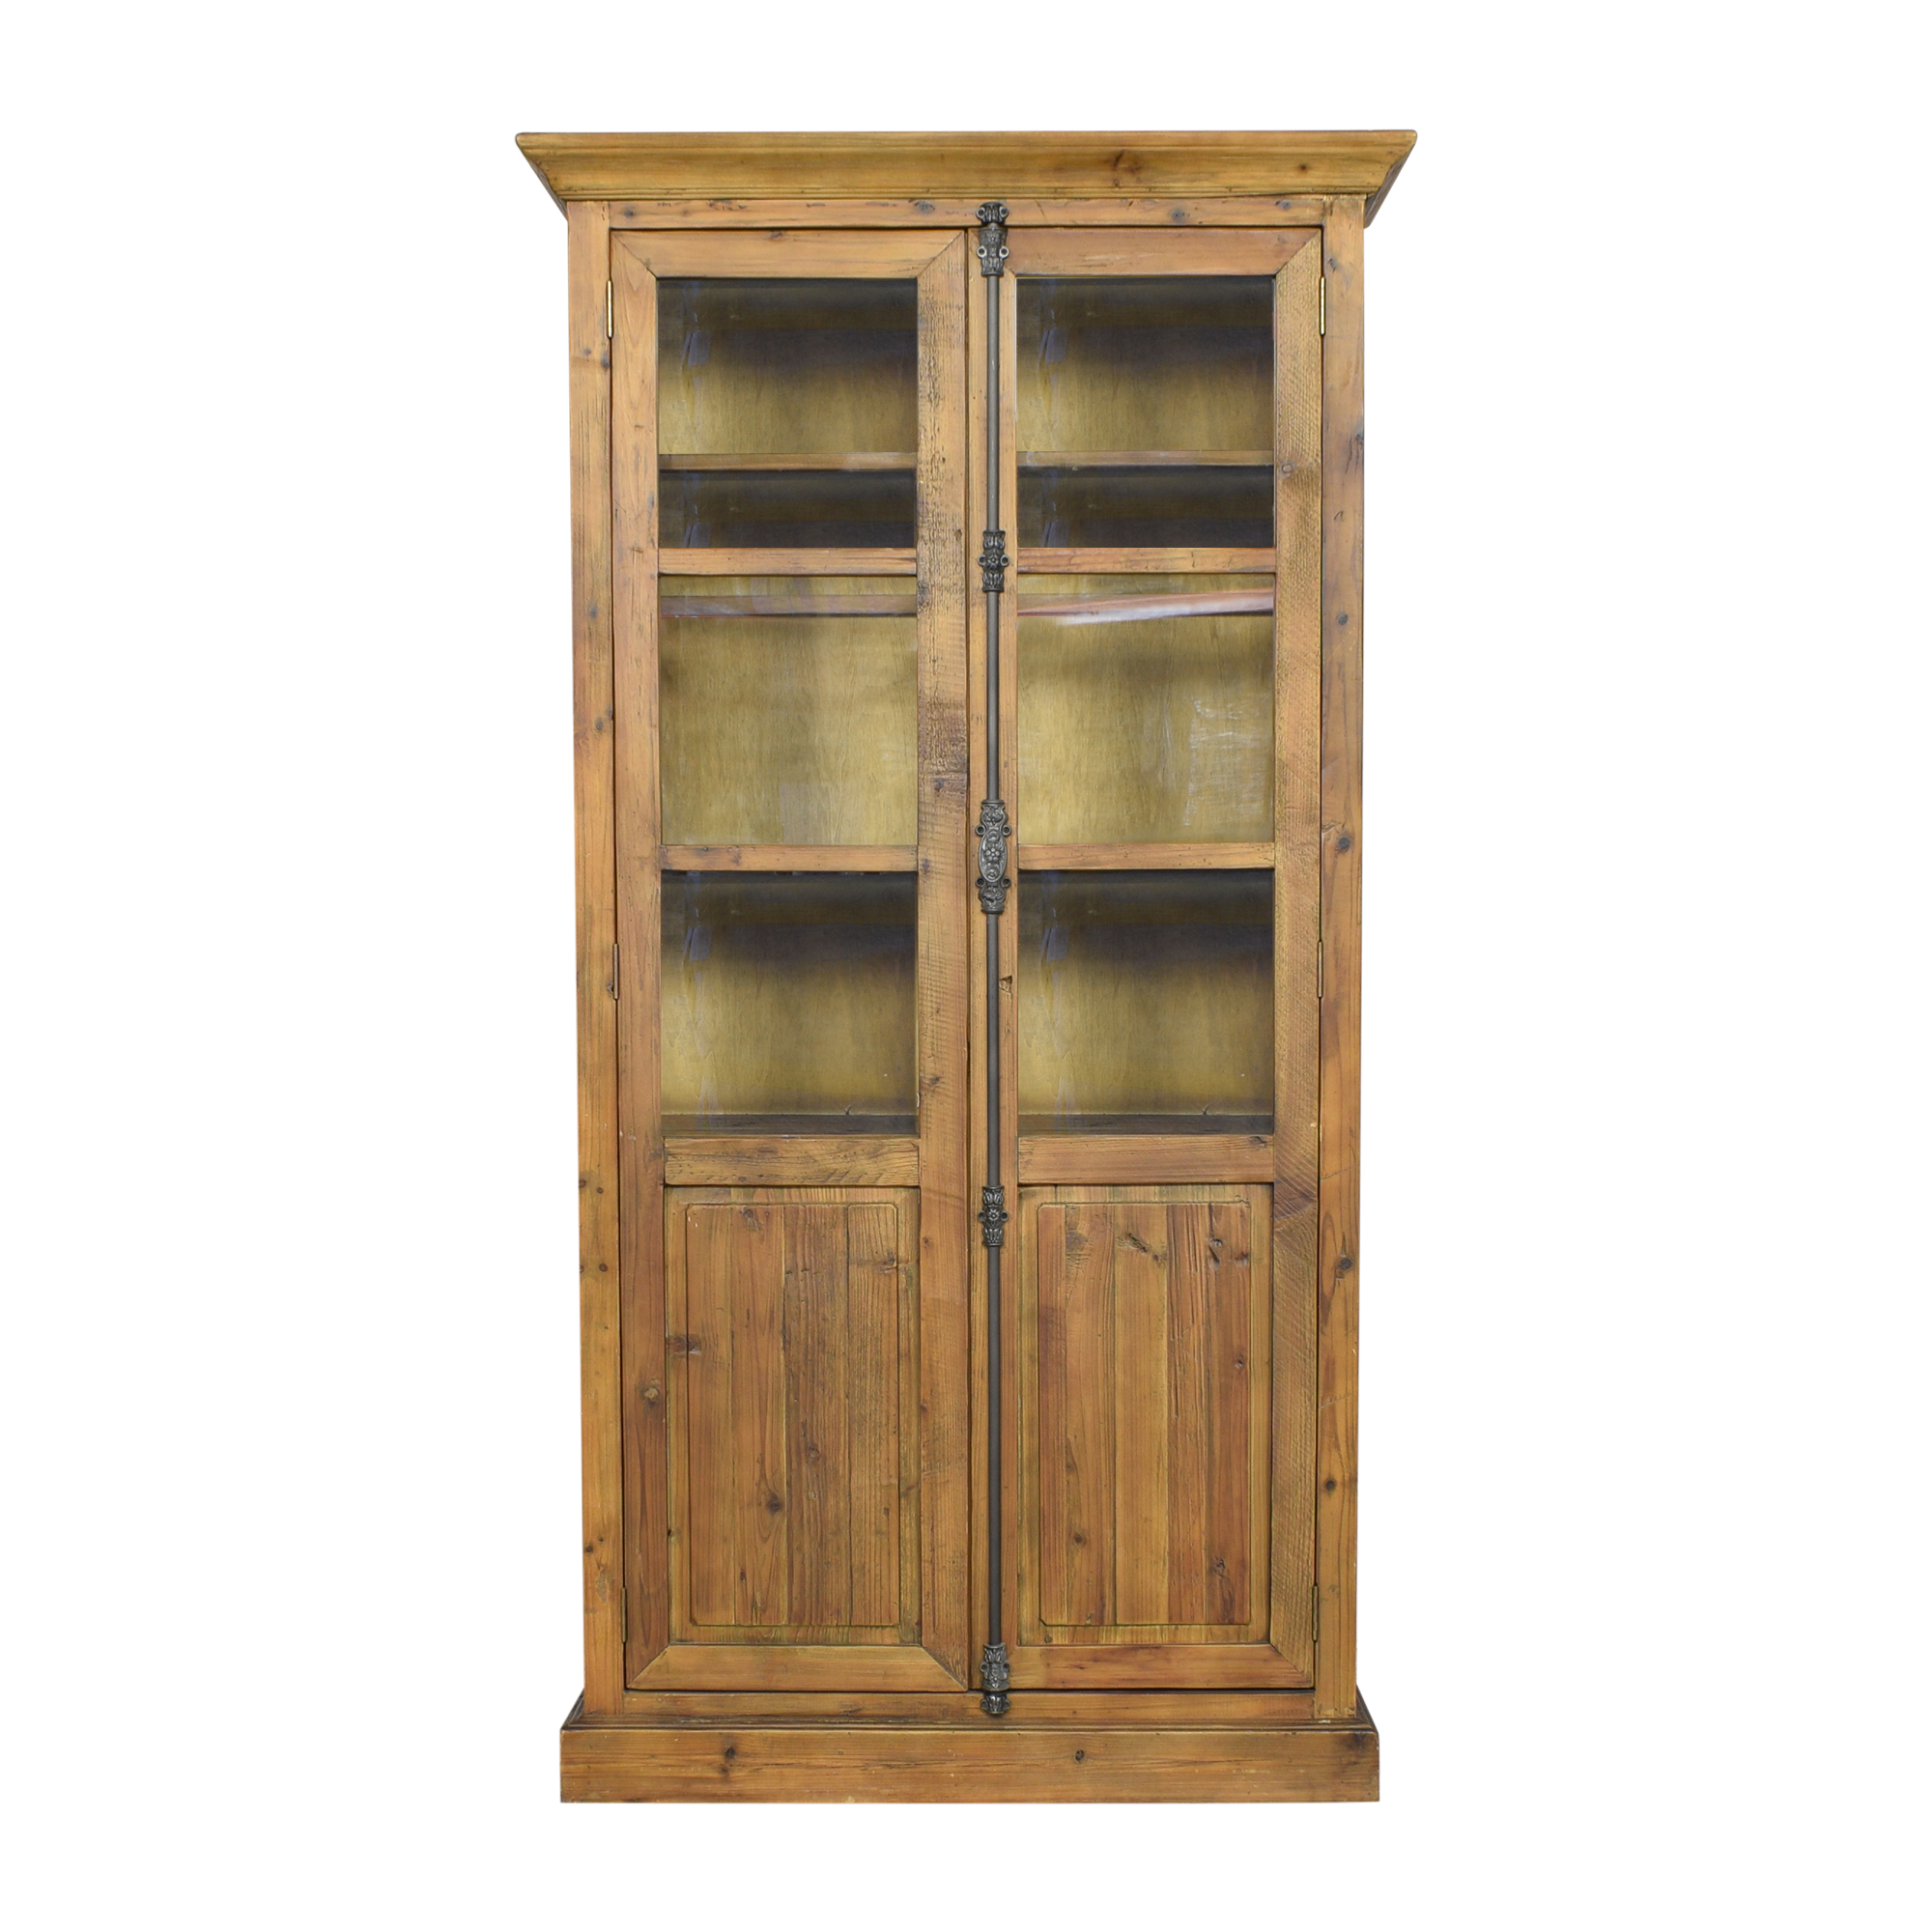 Crate & Barrel Crate & Barrel Bedford Tall Cabinet on sale